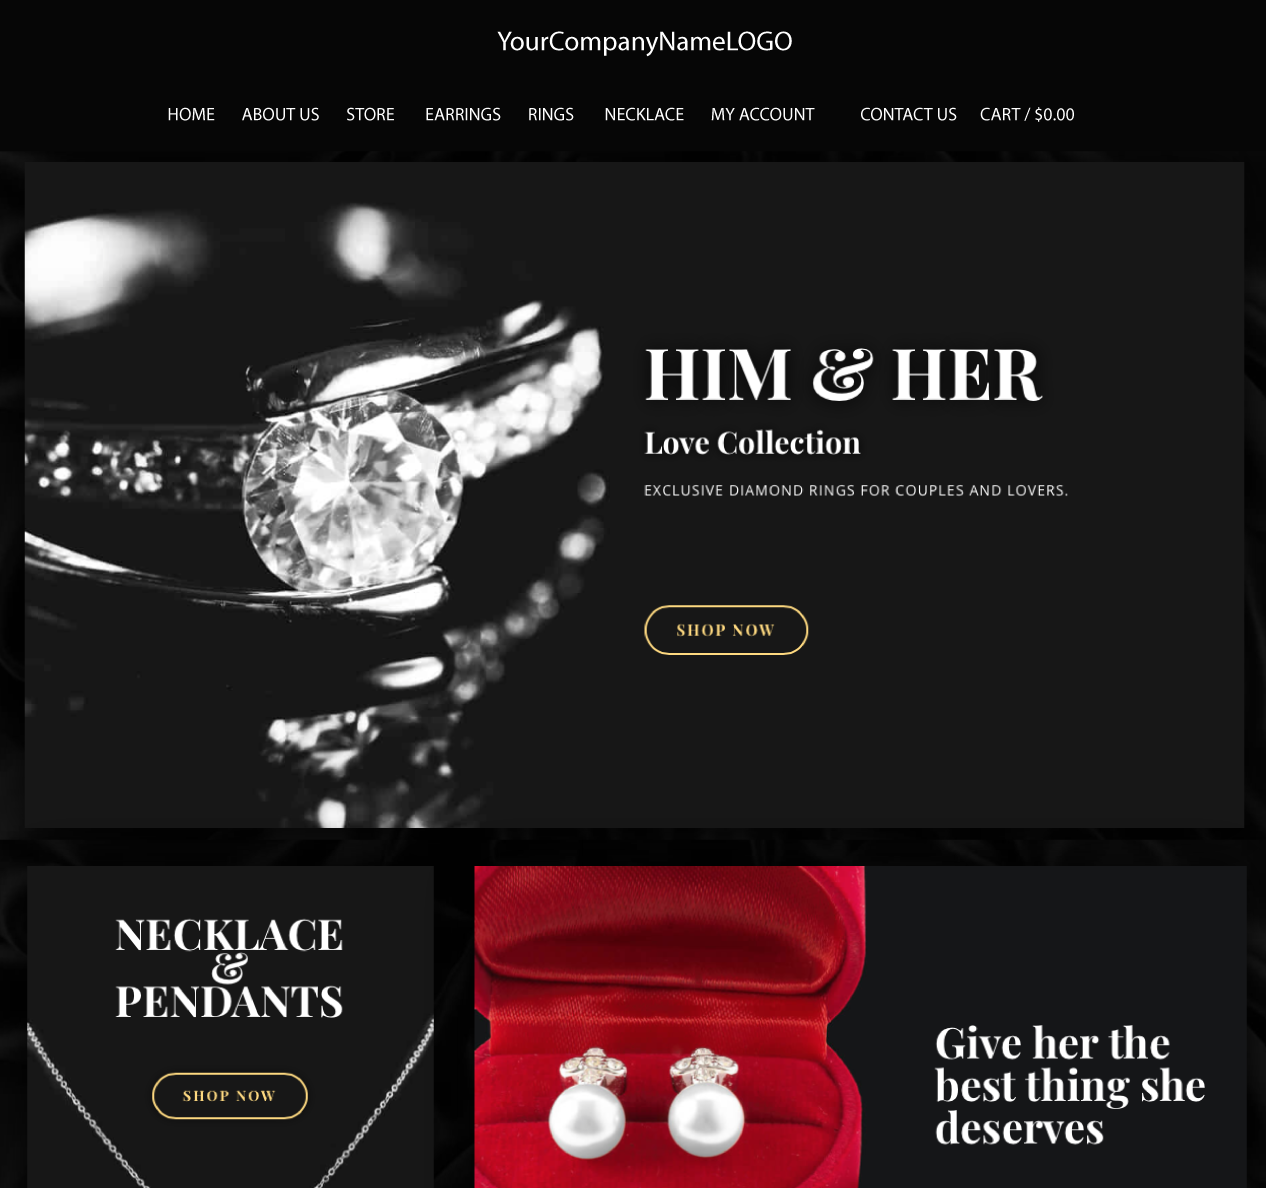 Center Image of JewelShop Website